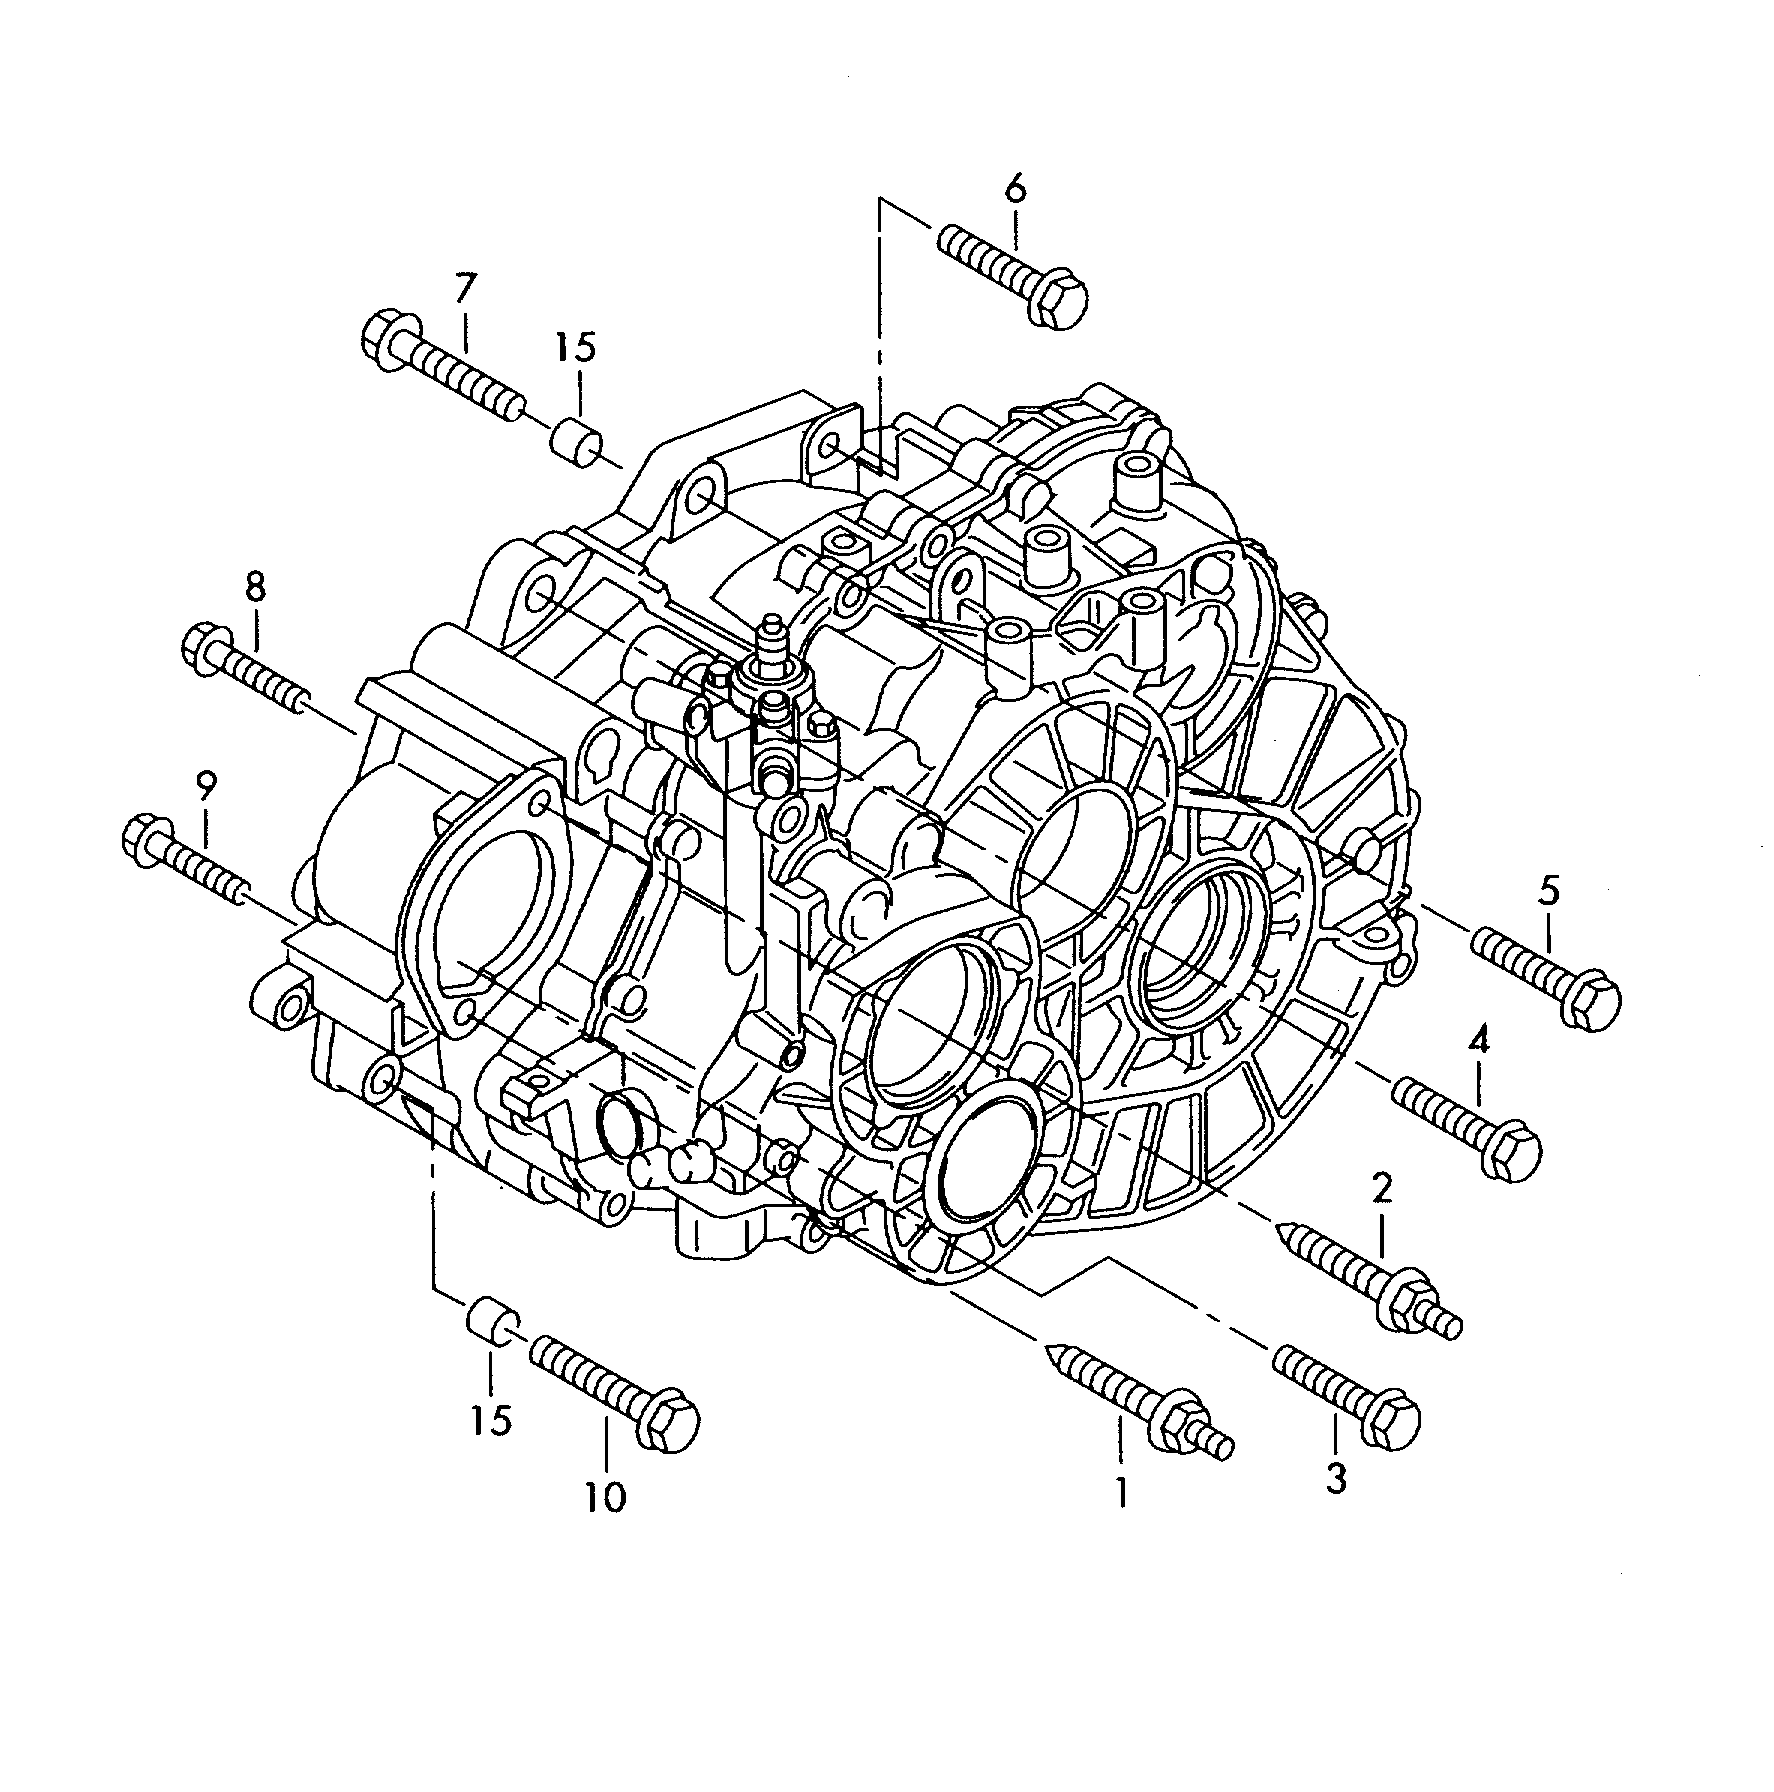 2012 Vw Tiguan Engine Diagram - wiring diagram power-upon -  power-upon.exitmedia.itExitMedia